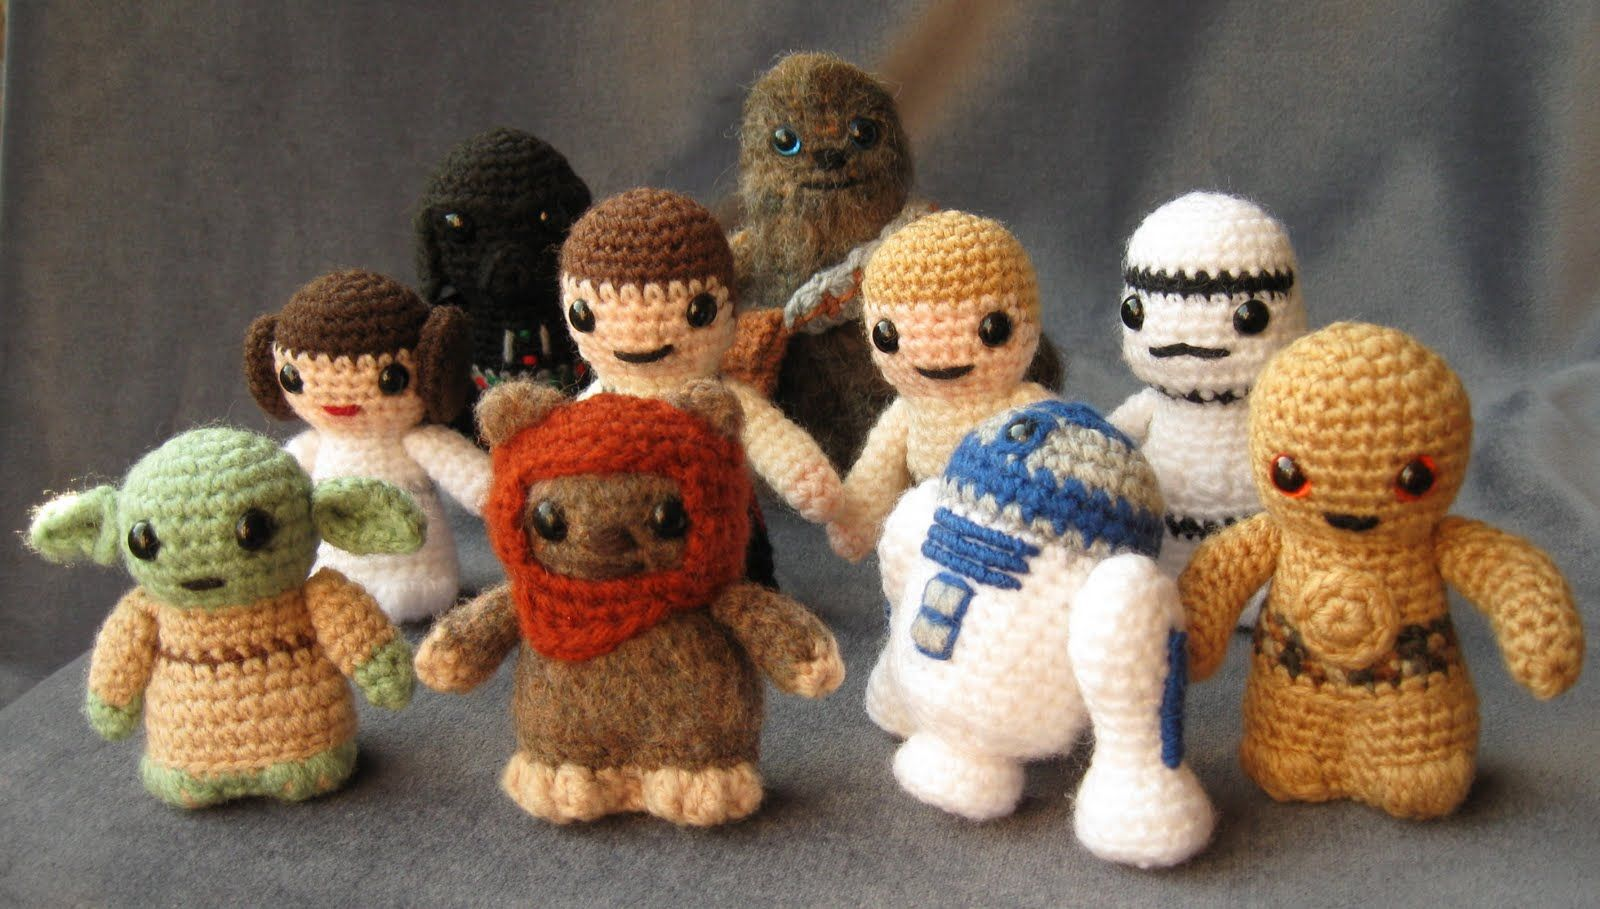 Crochet your own action figures amigurumi crochet and yarns might have to make an attempt at these lucyravenscar crochet creatures star wars mini amigurumi bankloansurffo Images